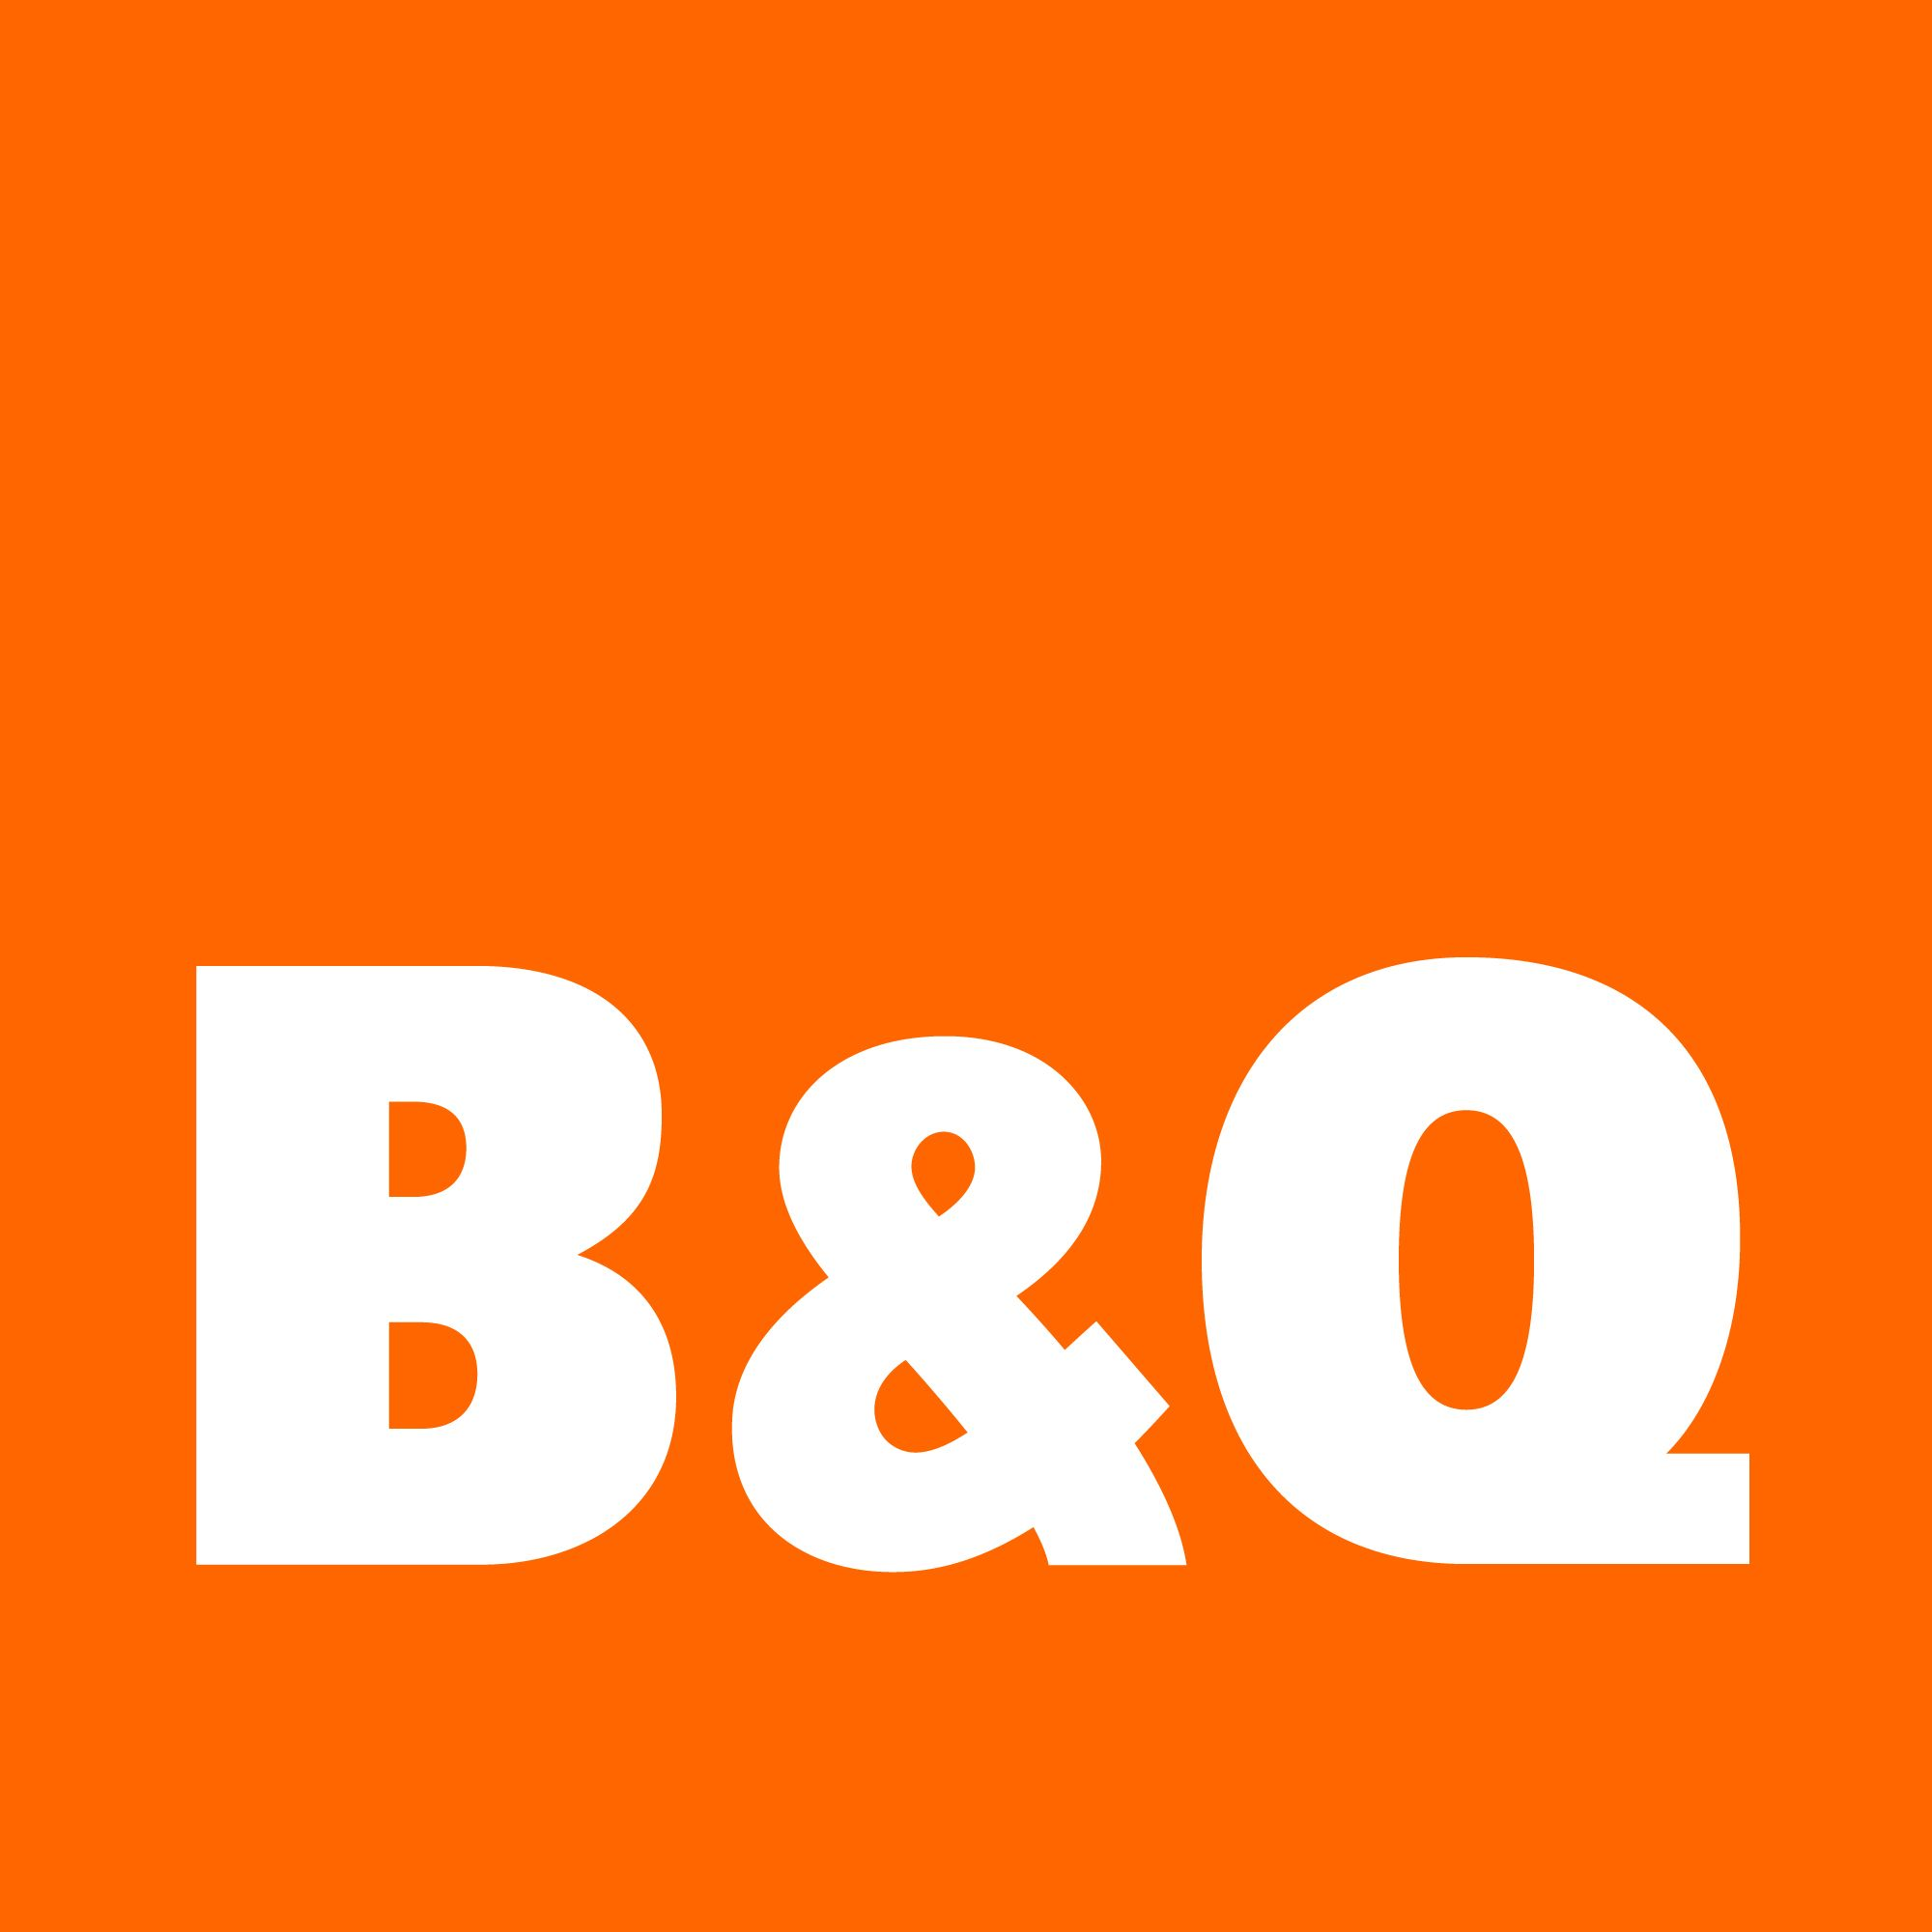 B&Q logo, via B&Q website